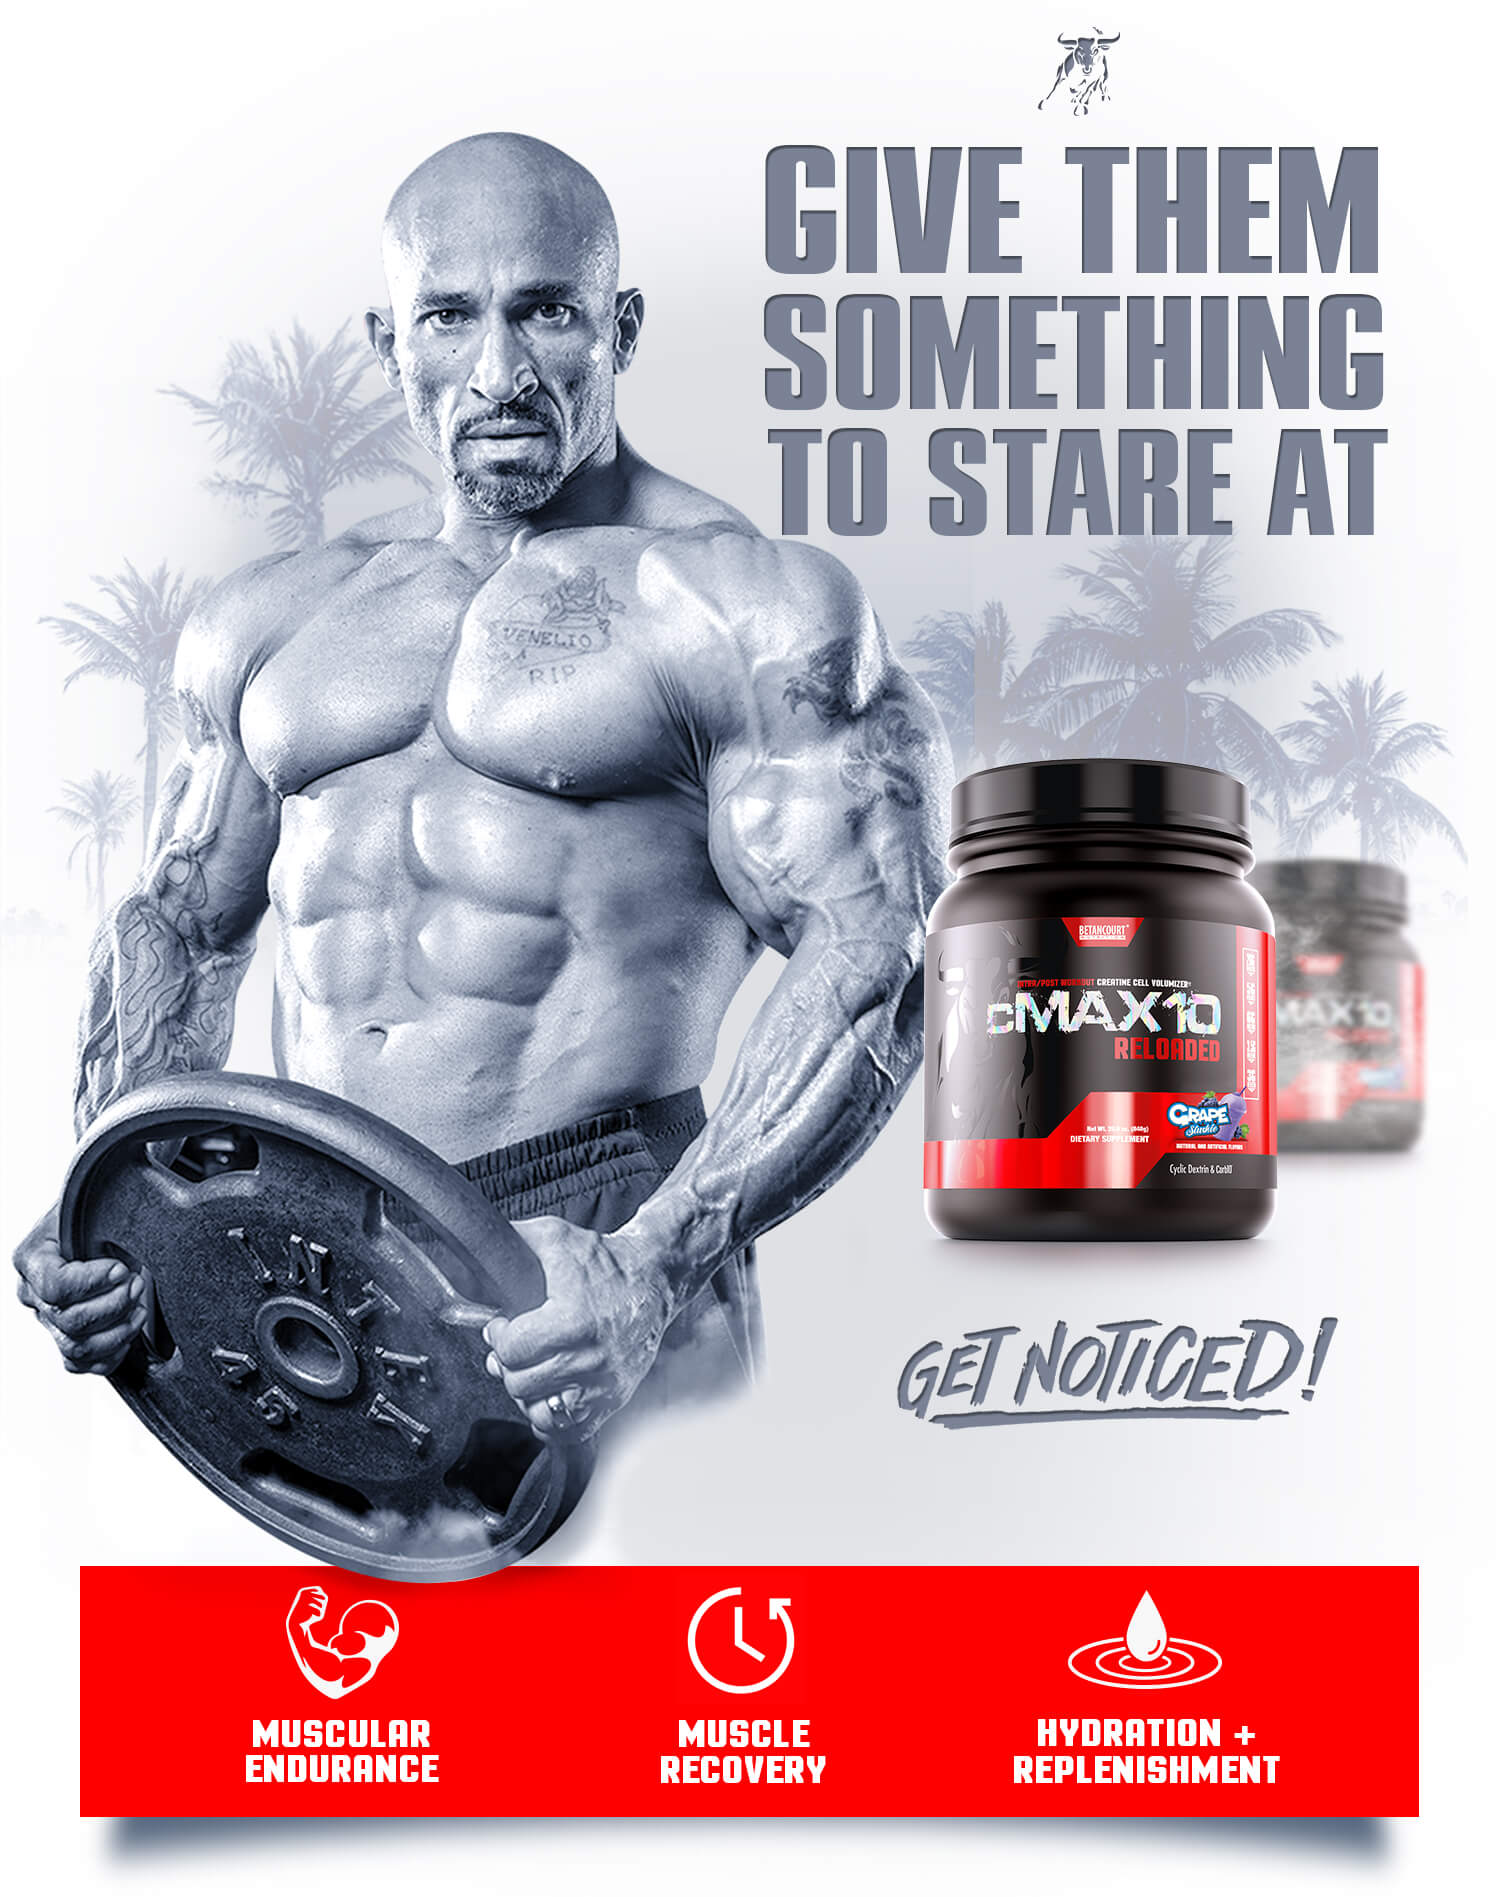 CMAX 10 - betancourt nutirtion - Intra/Post Workout Creatine Cell Volumizer